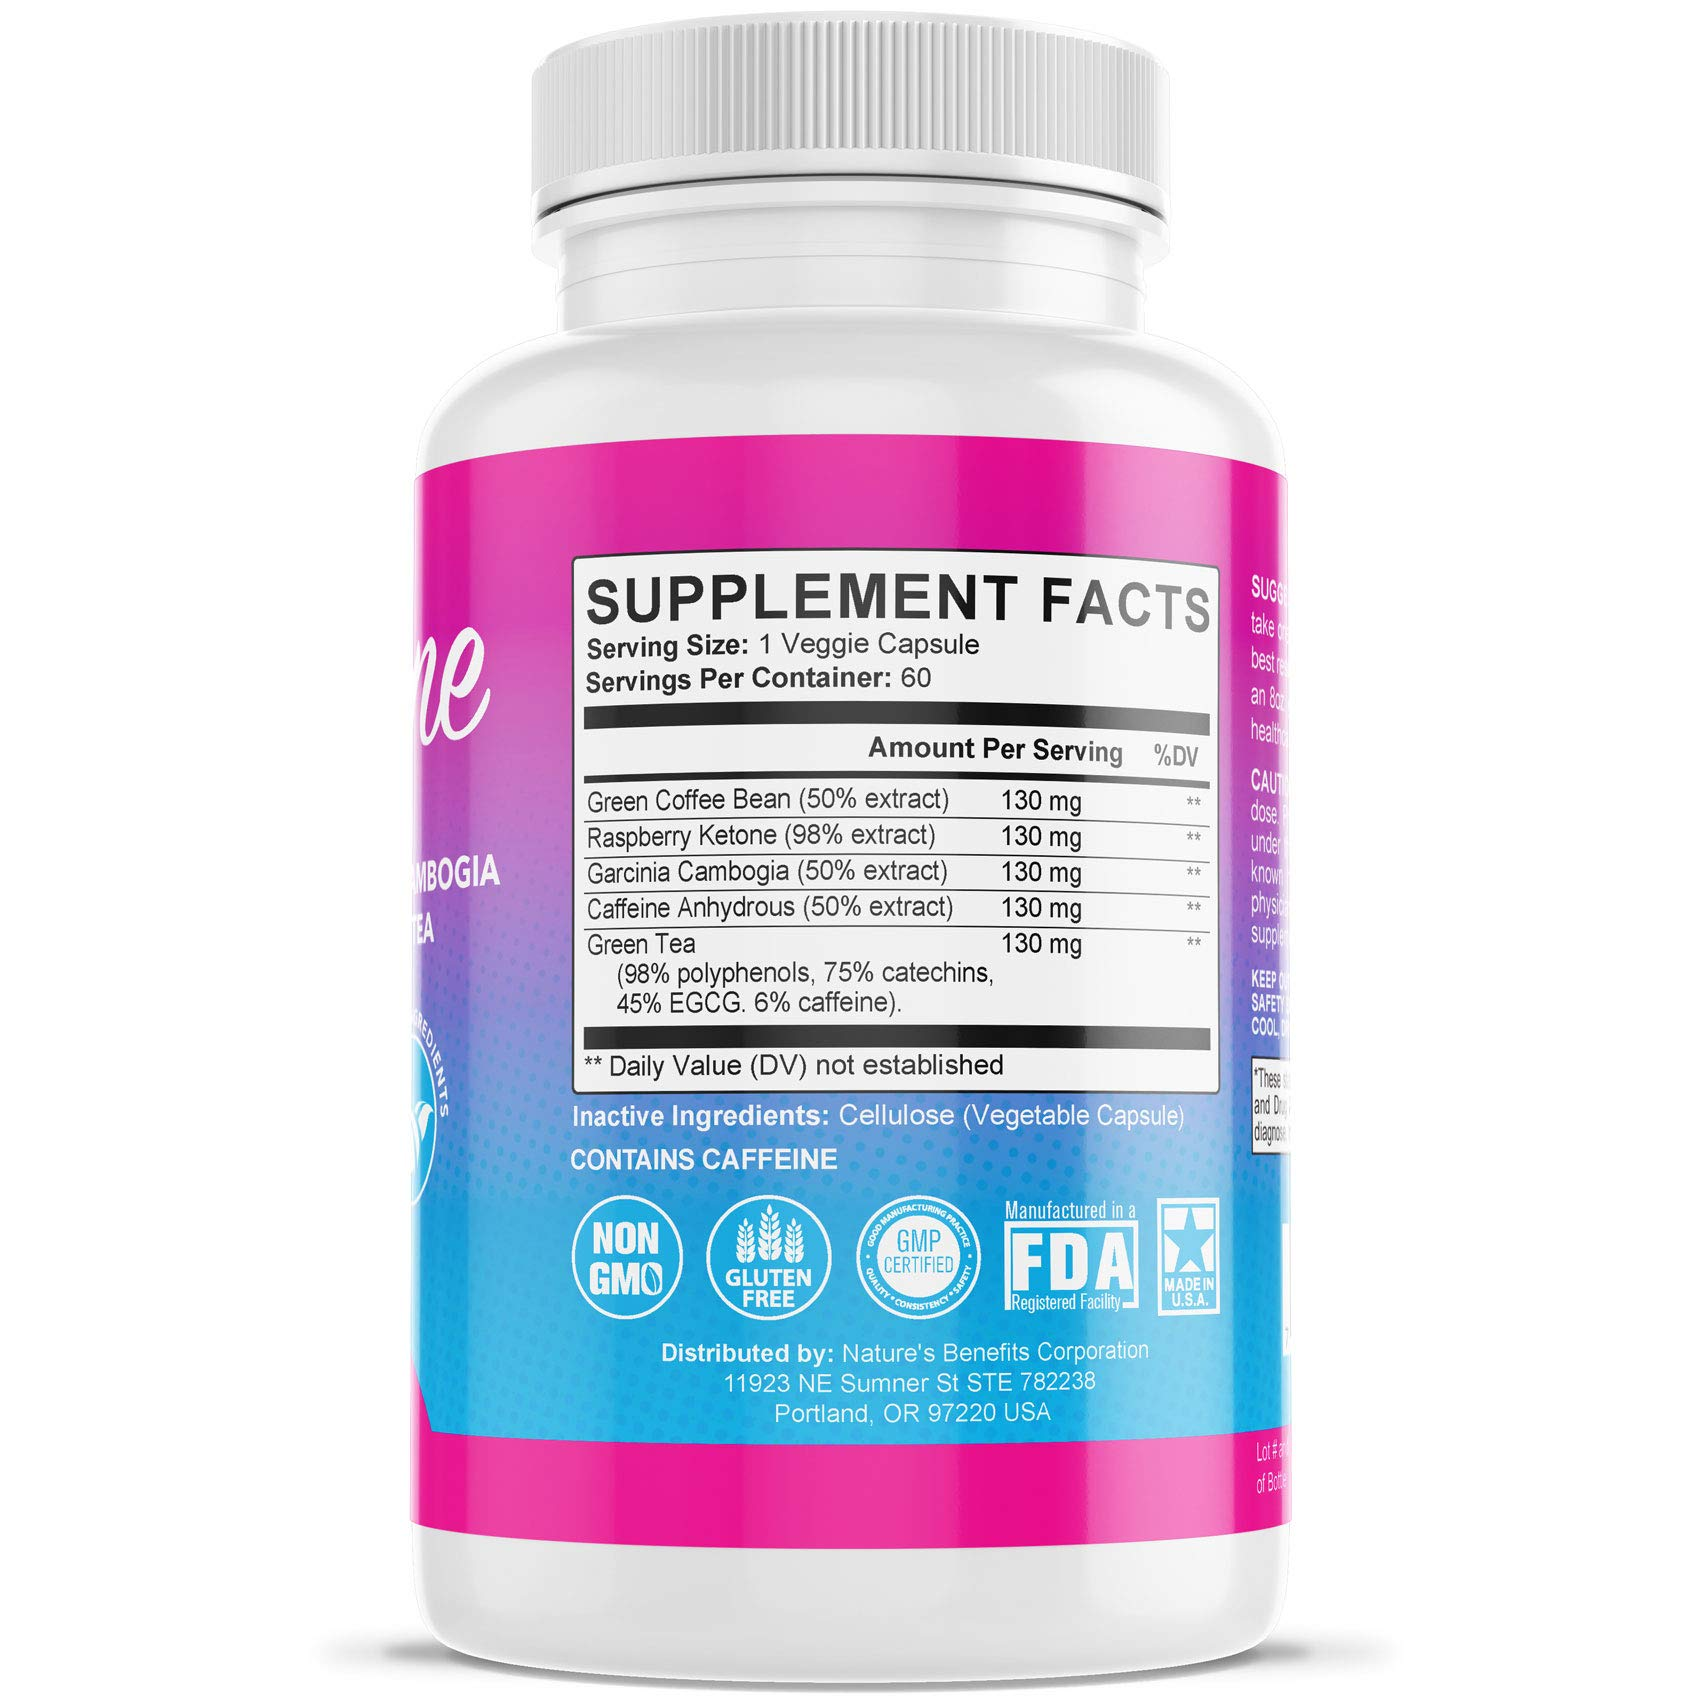 Rapid Tone Weight Loss Pills Supplement - Burn Fat Quicker - Carb Blocker, Appetite Suppressant, Fat Burner - Natural Thermogenic Extreme Diet Fast WeightLoss for Women Men (5 Month Supply) by Rapid Tone (Image #2)